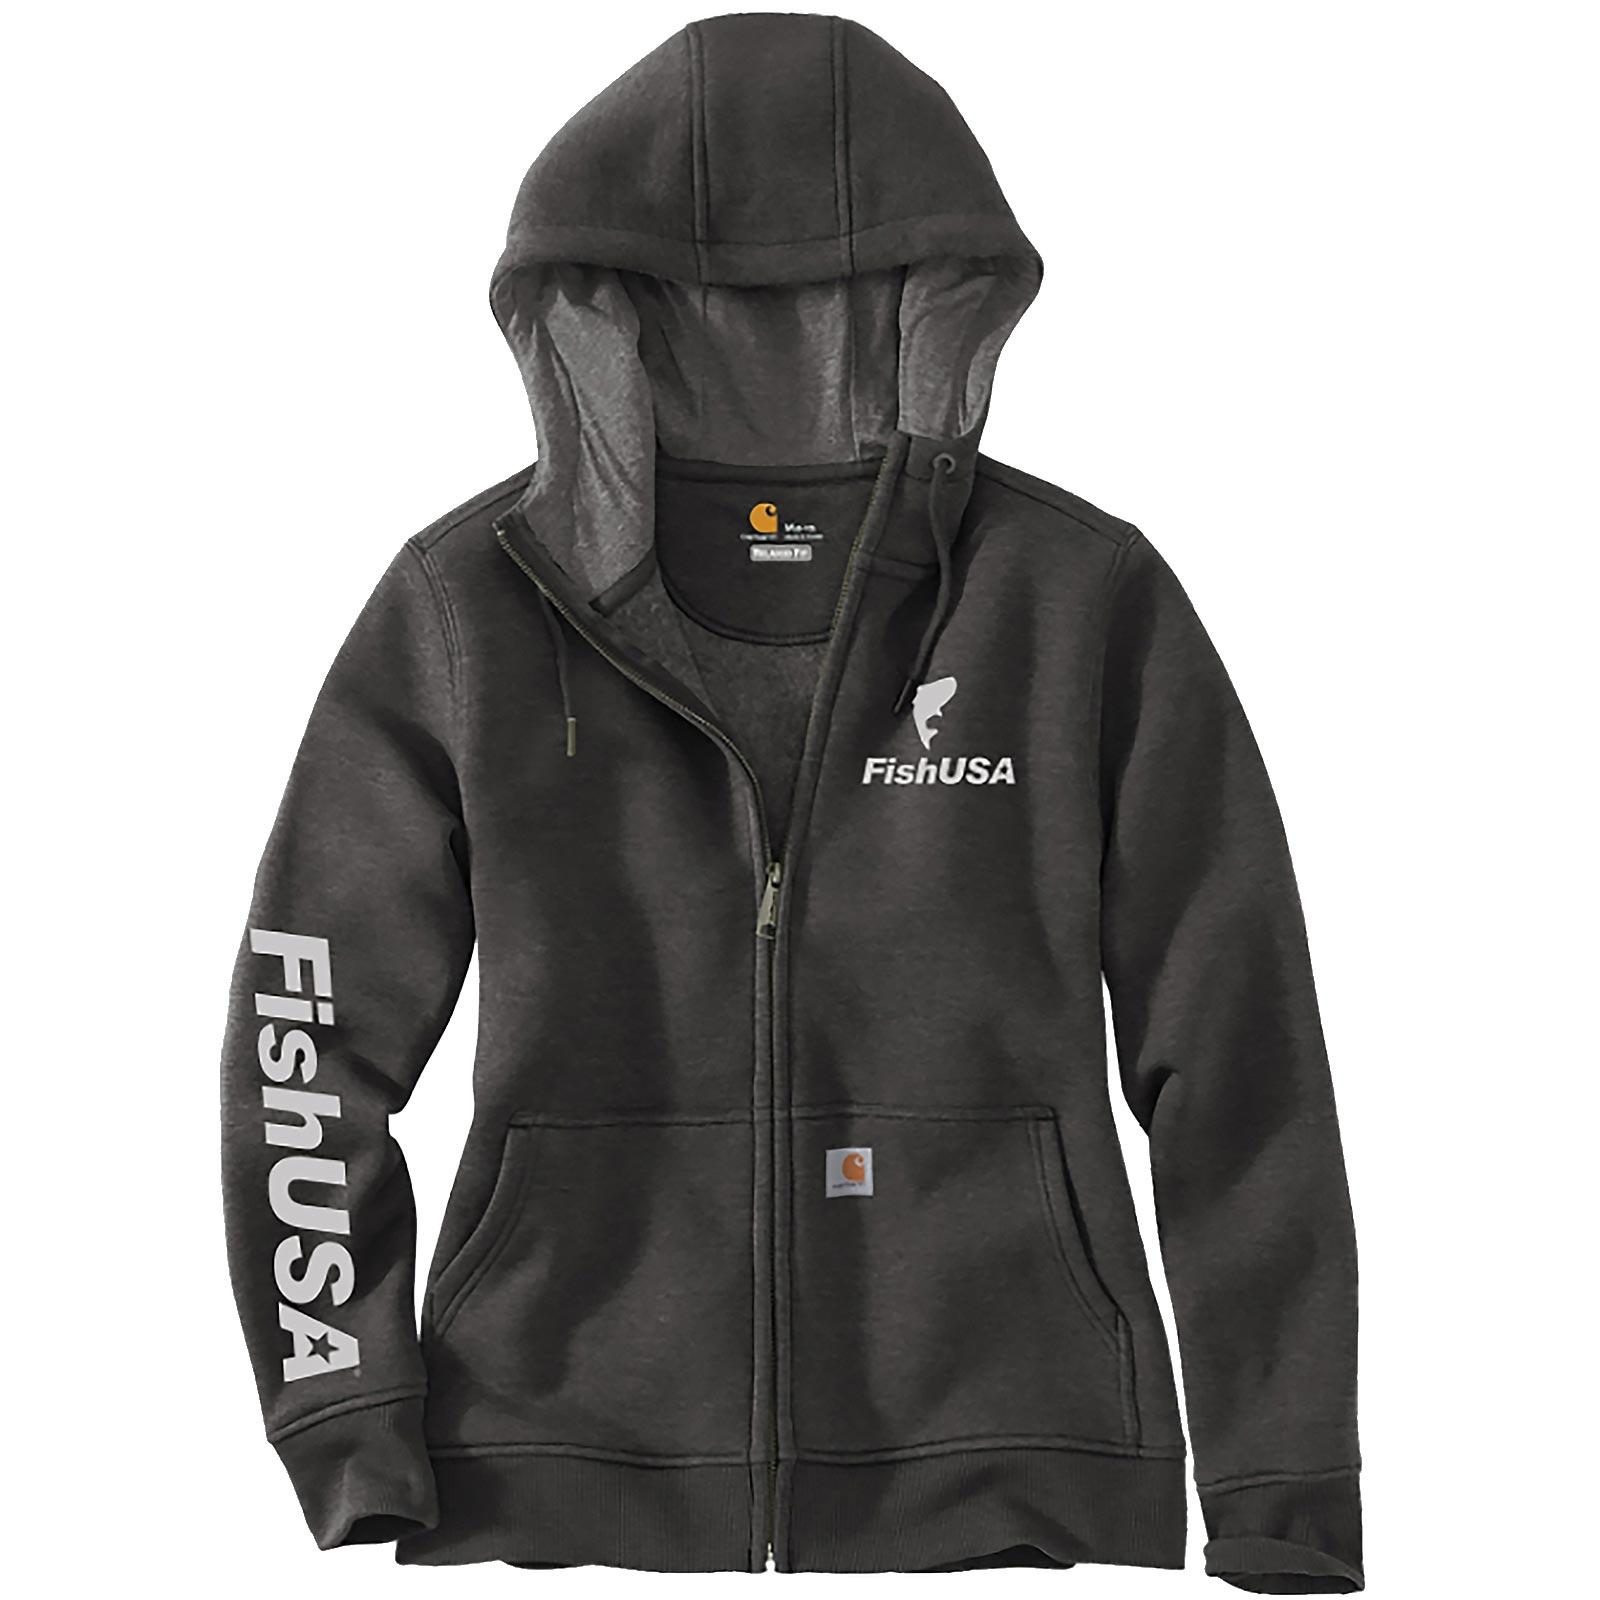 FishUSA Carhartt Women's Zip-Up Hoodie